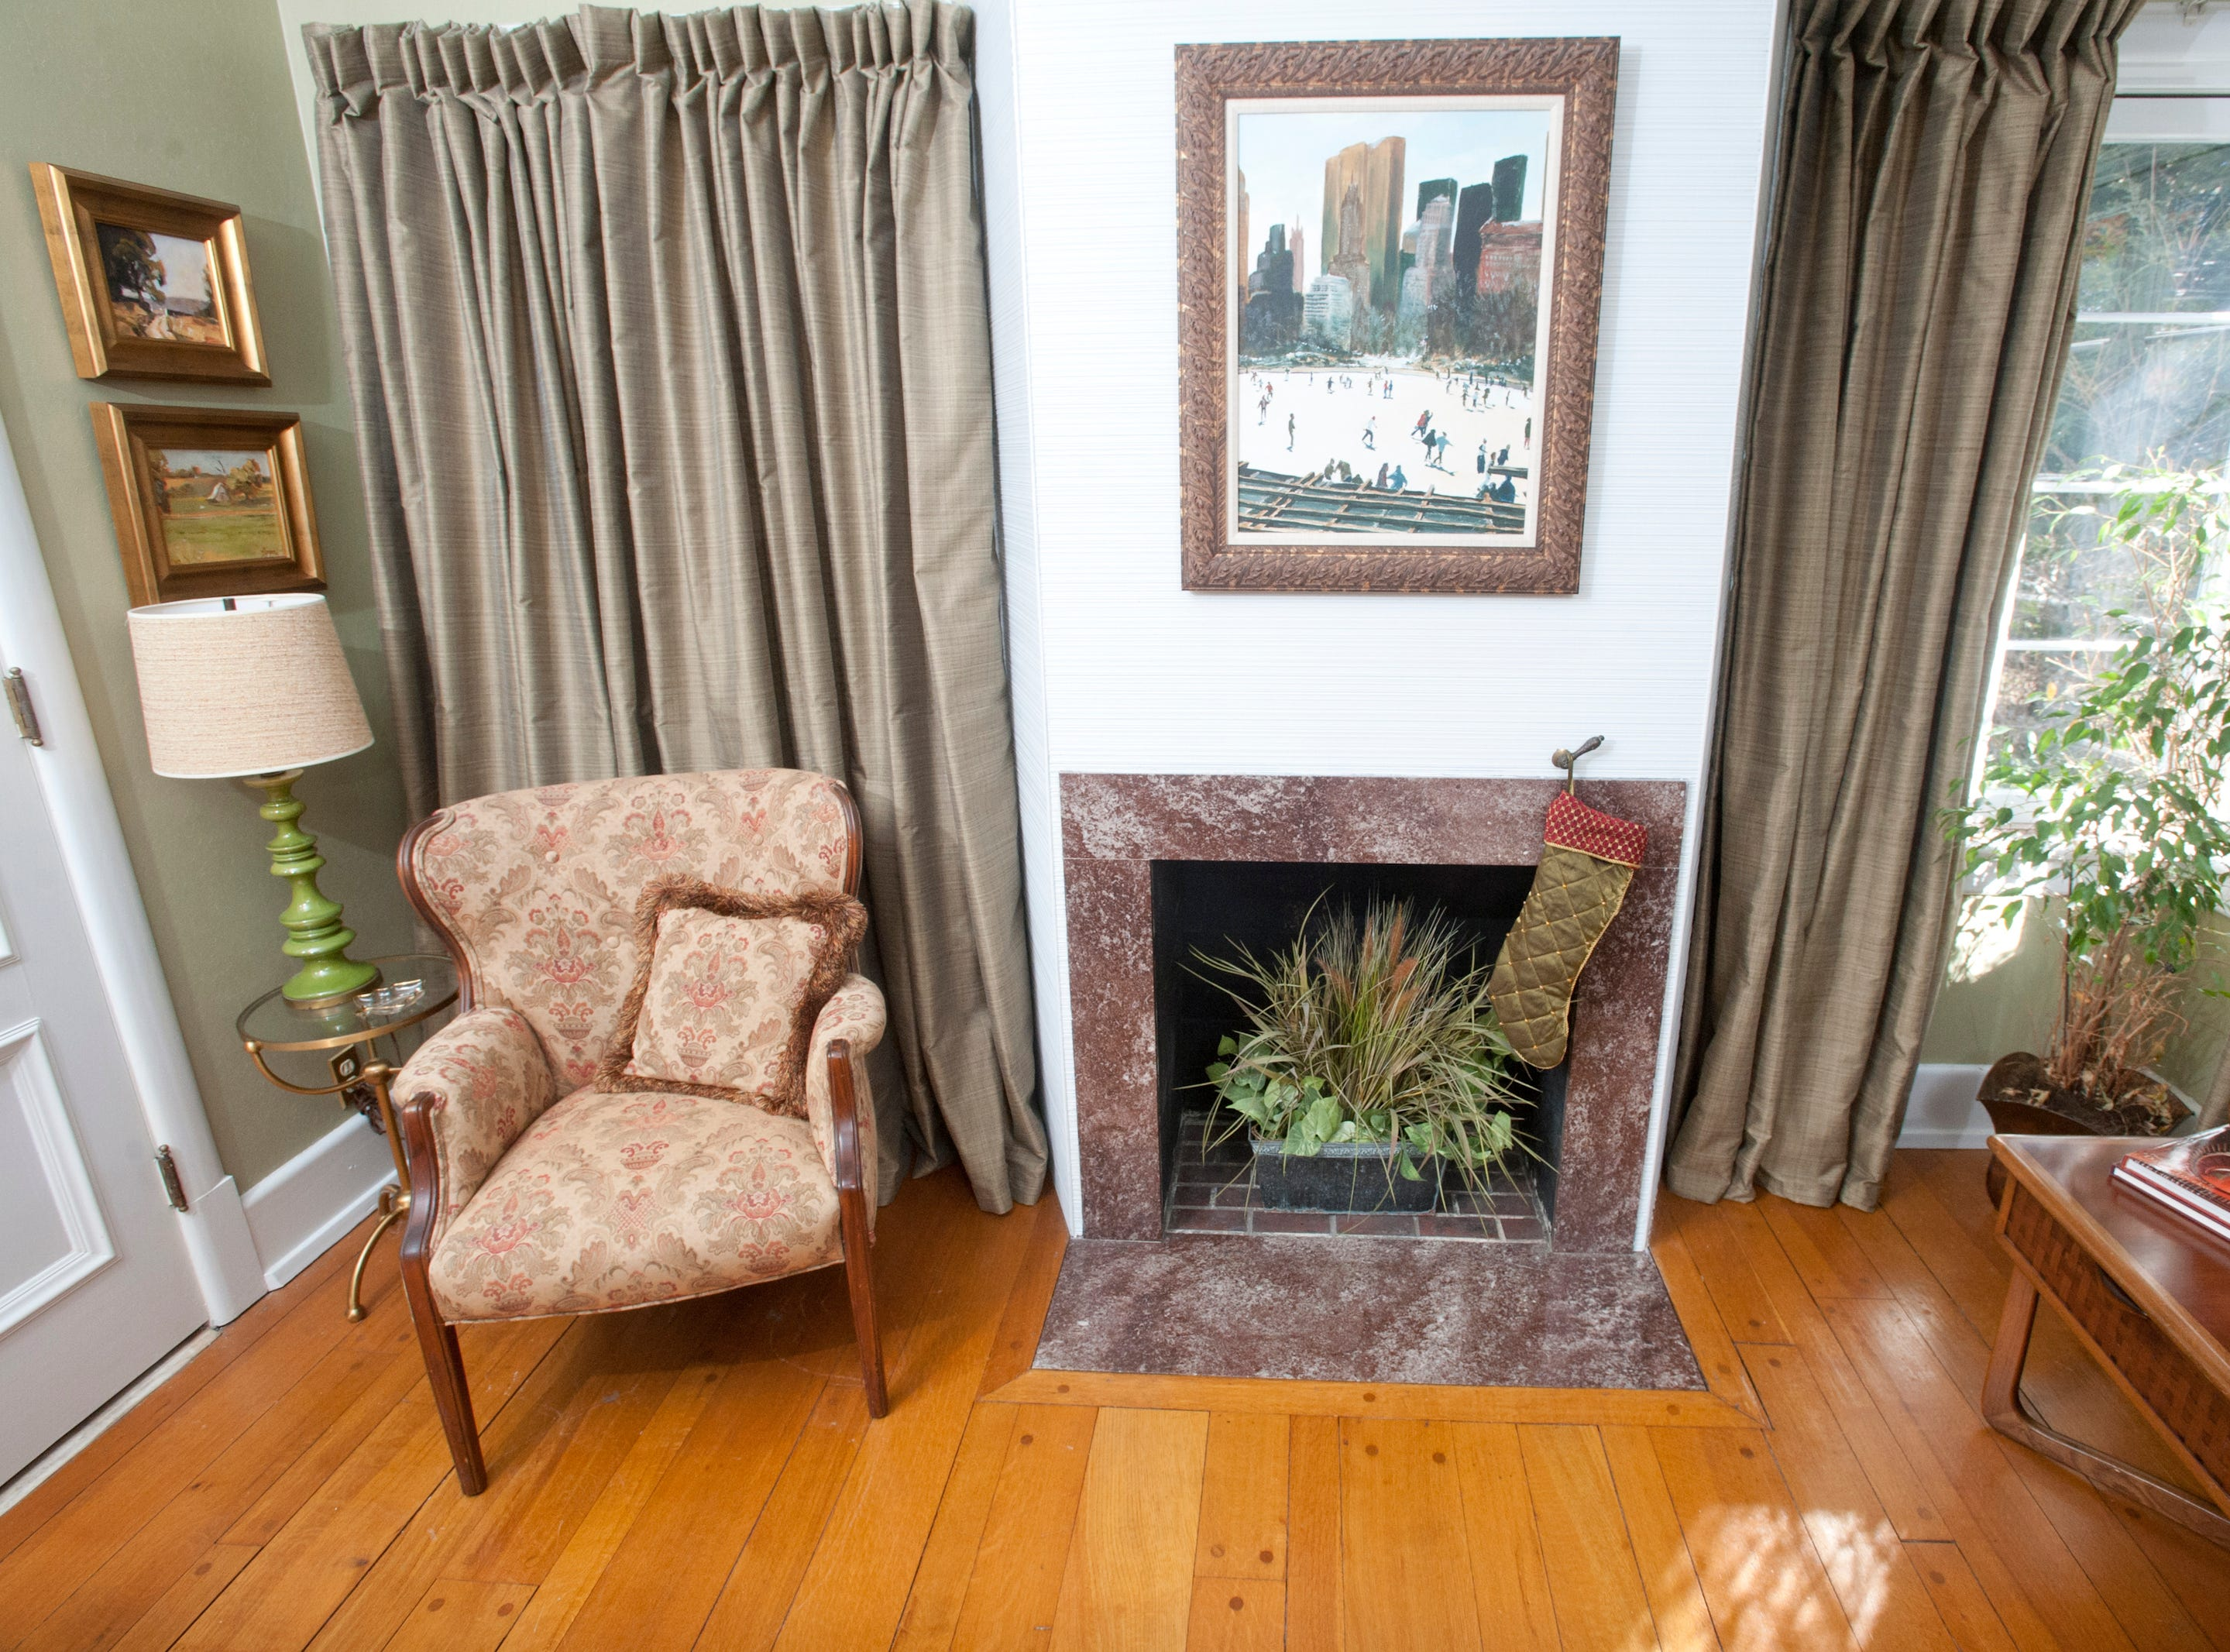 A fireplace and chair in the television room.10 December 2018